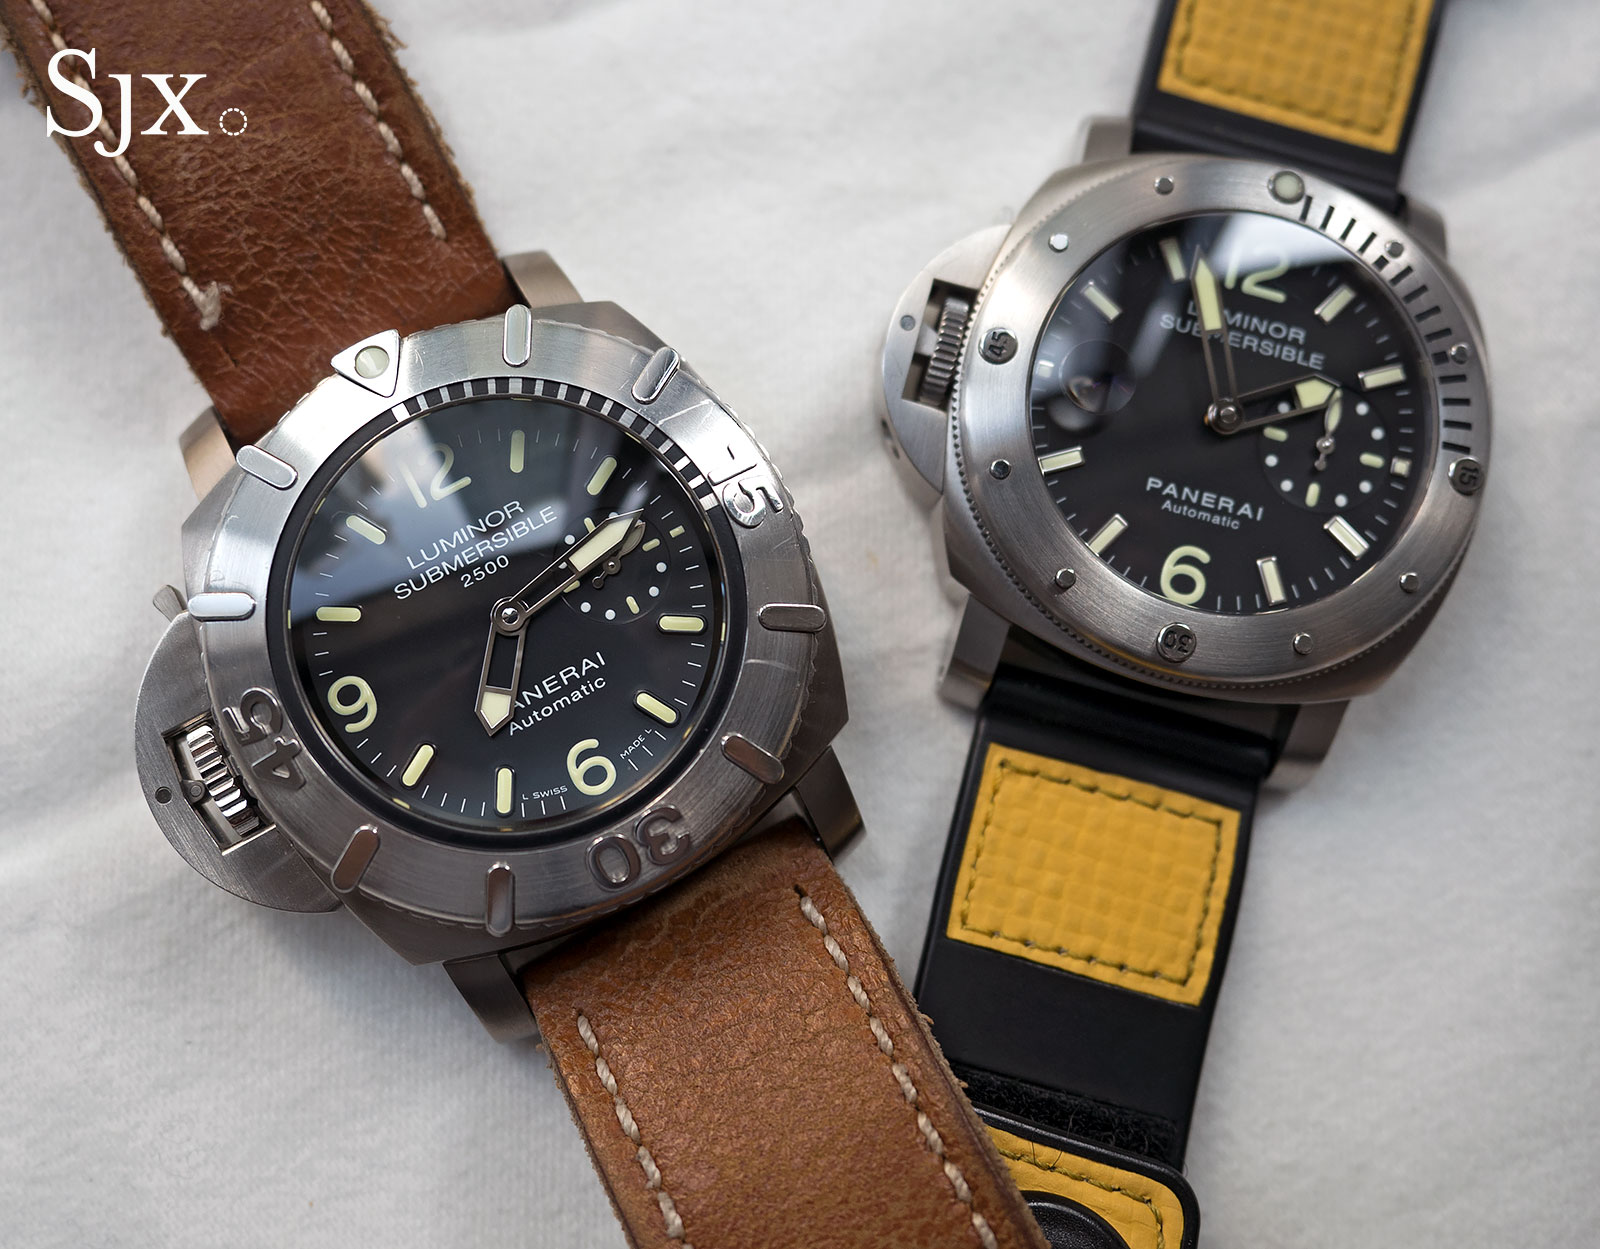 Panerai Submersible 2500 Destro Chronopassion PAM358-8